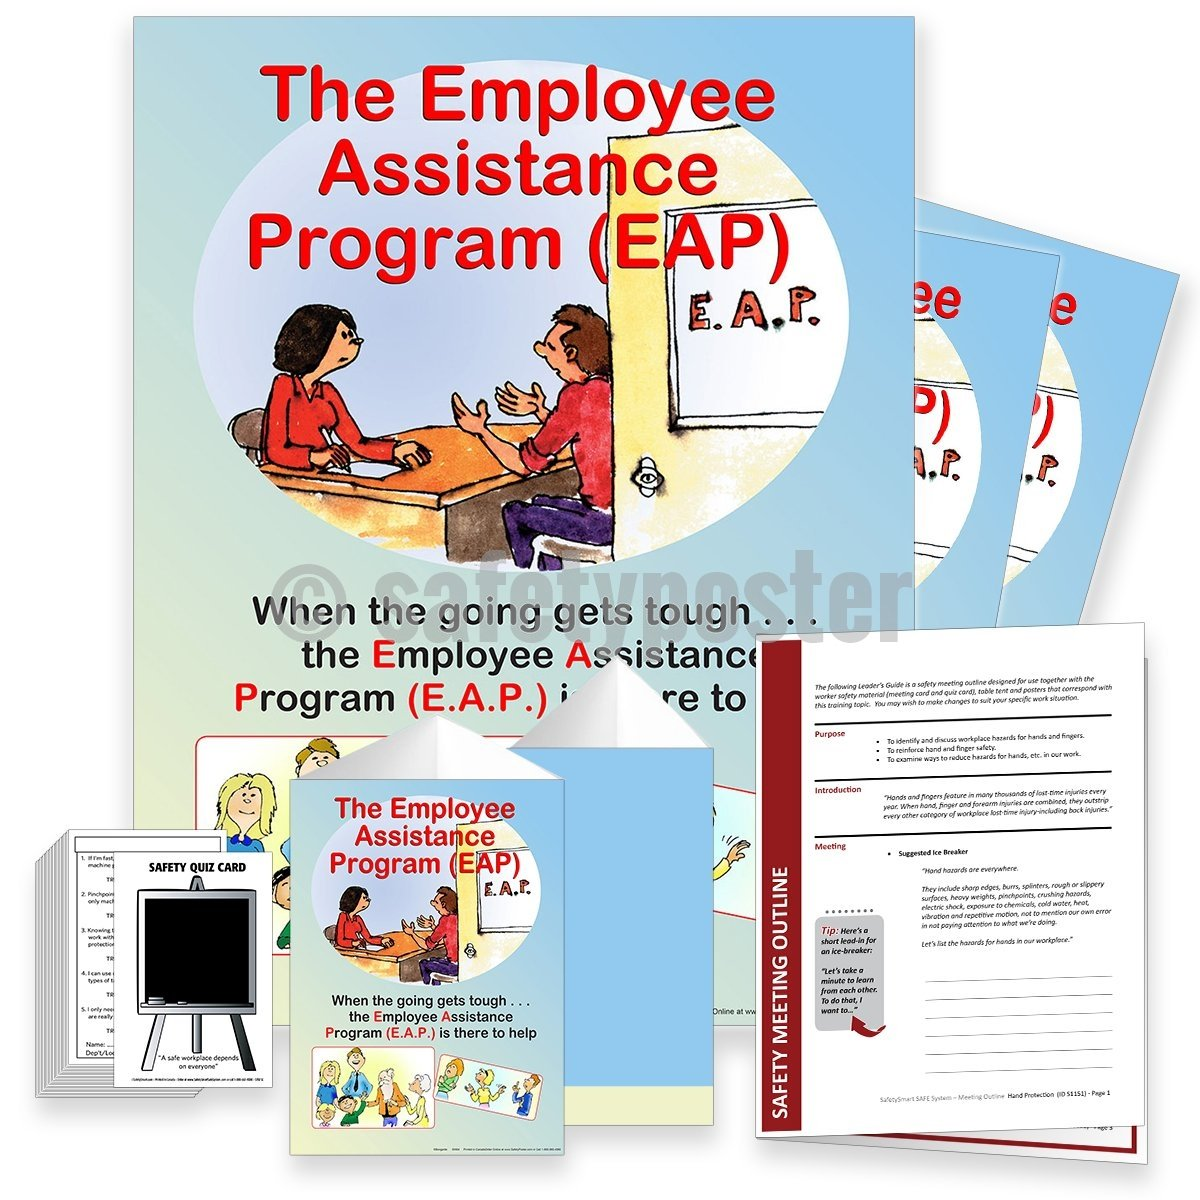 Safety Meeting Kit - Employee Assistance Program Kits